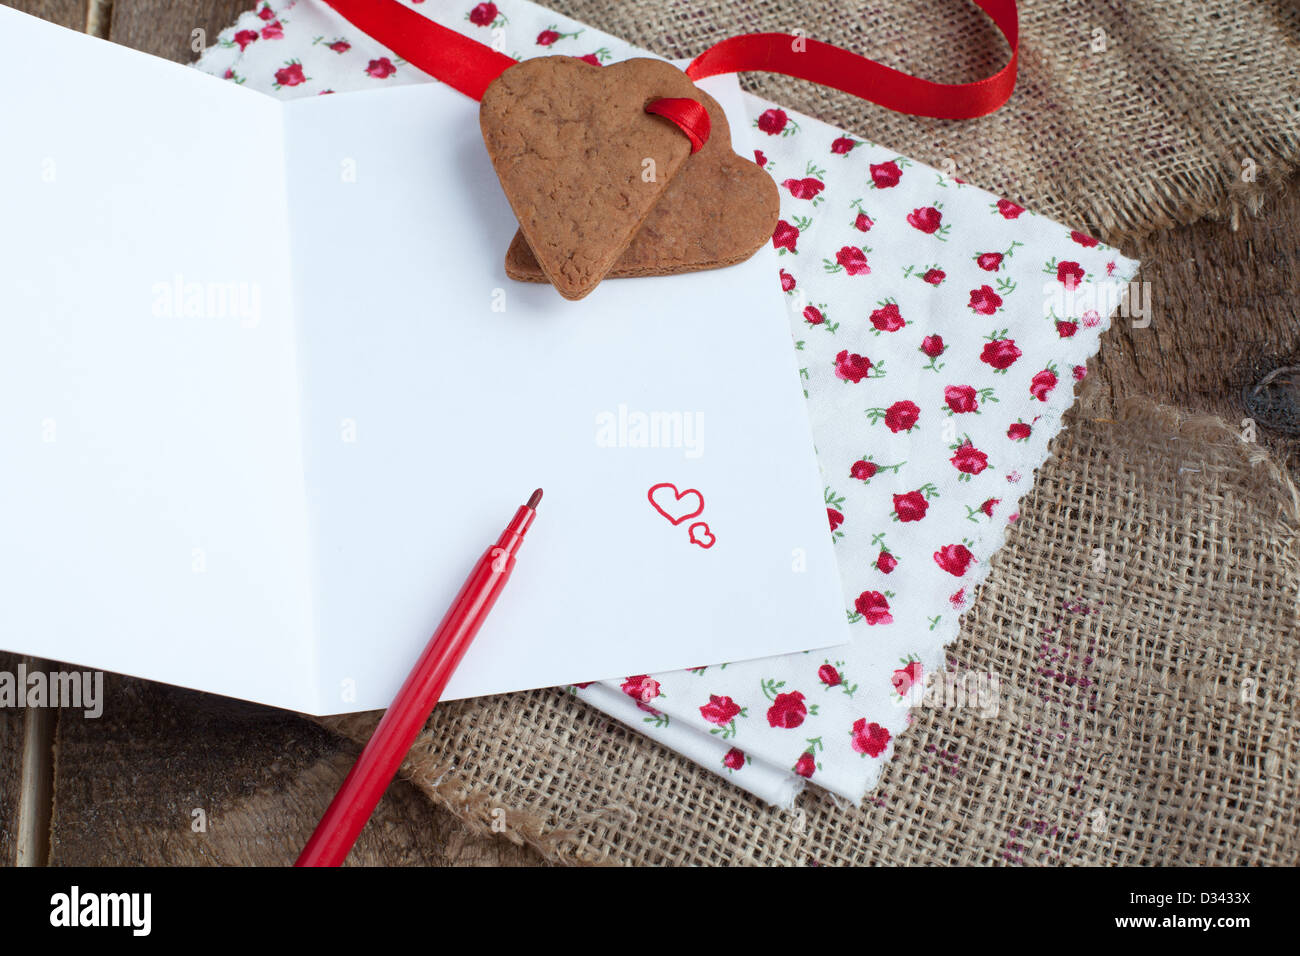 Saint Valentine's Love letter with heart shape cookies, hearts in rustic style - Stock Image